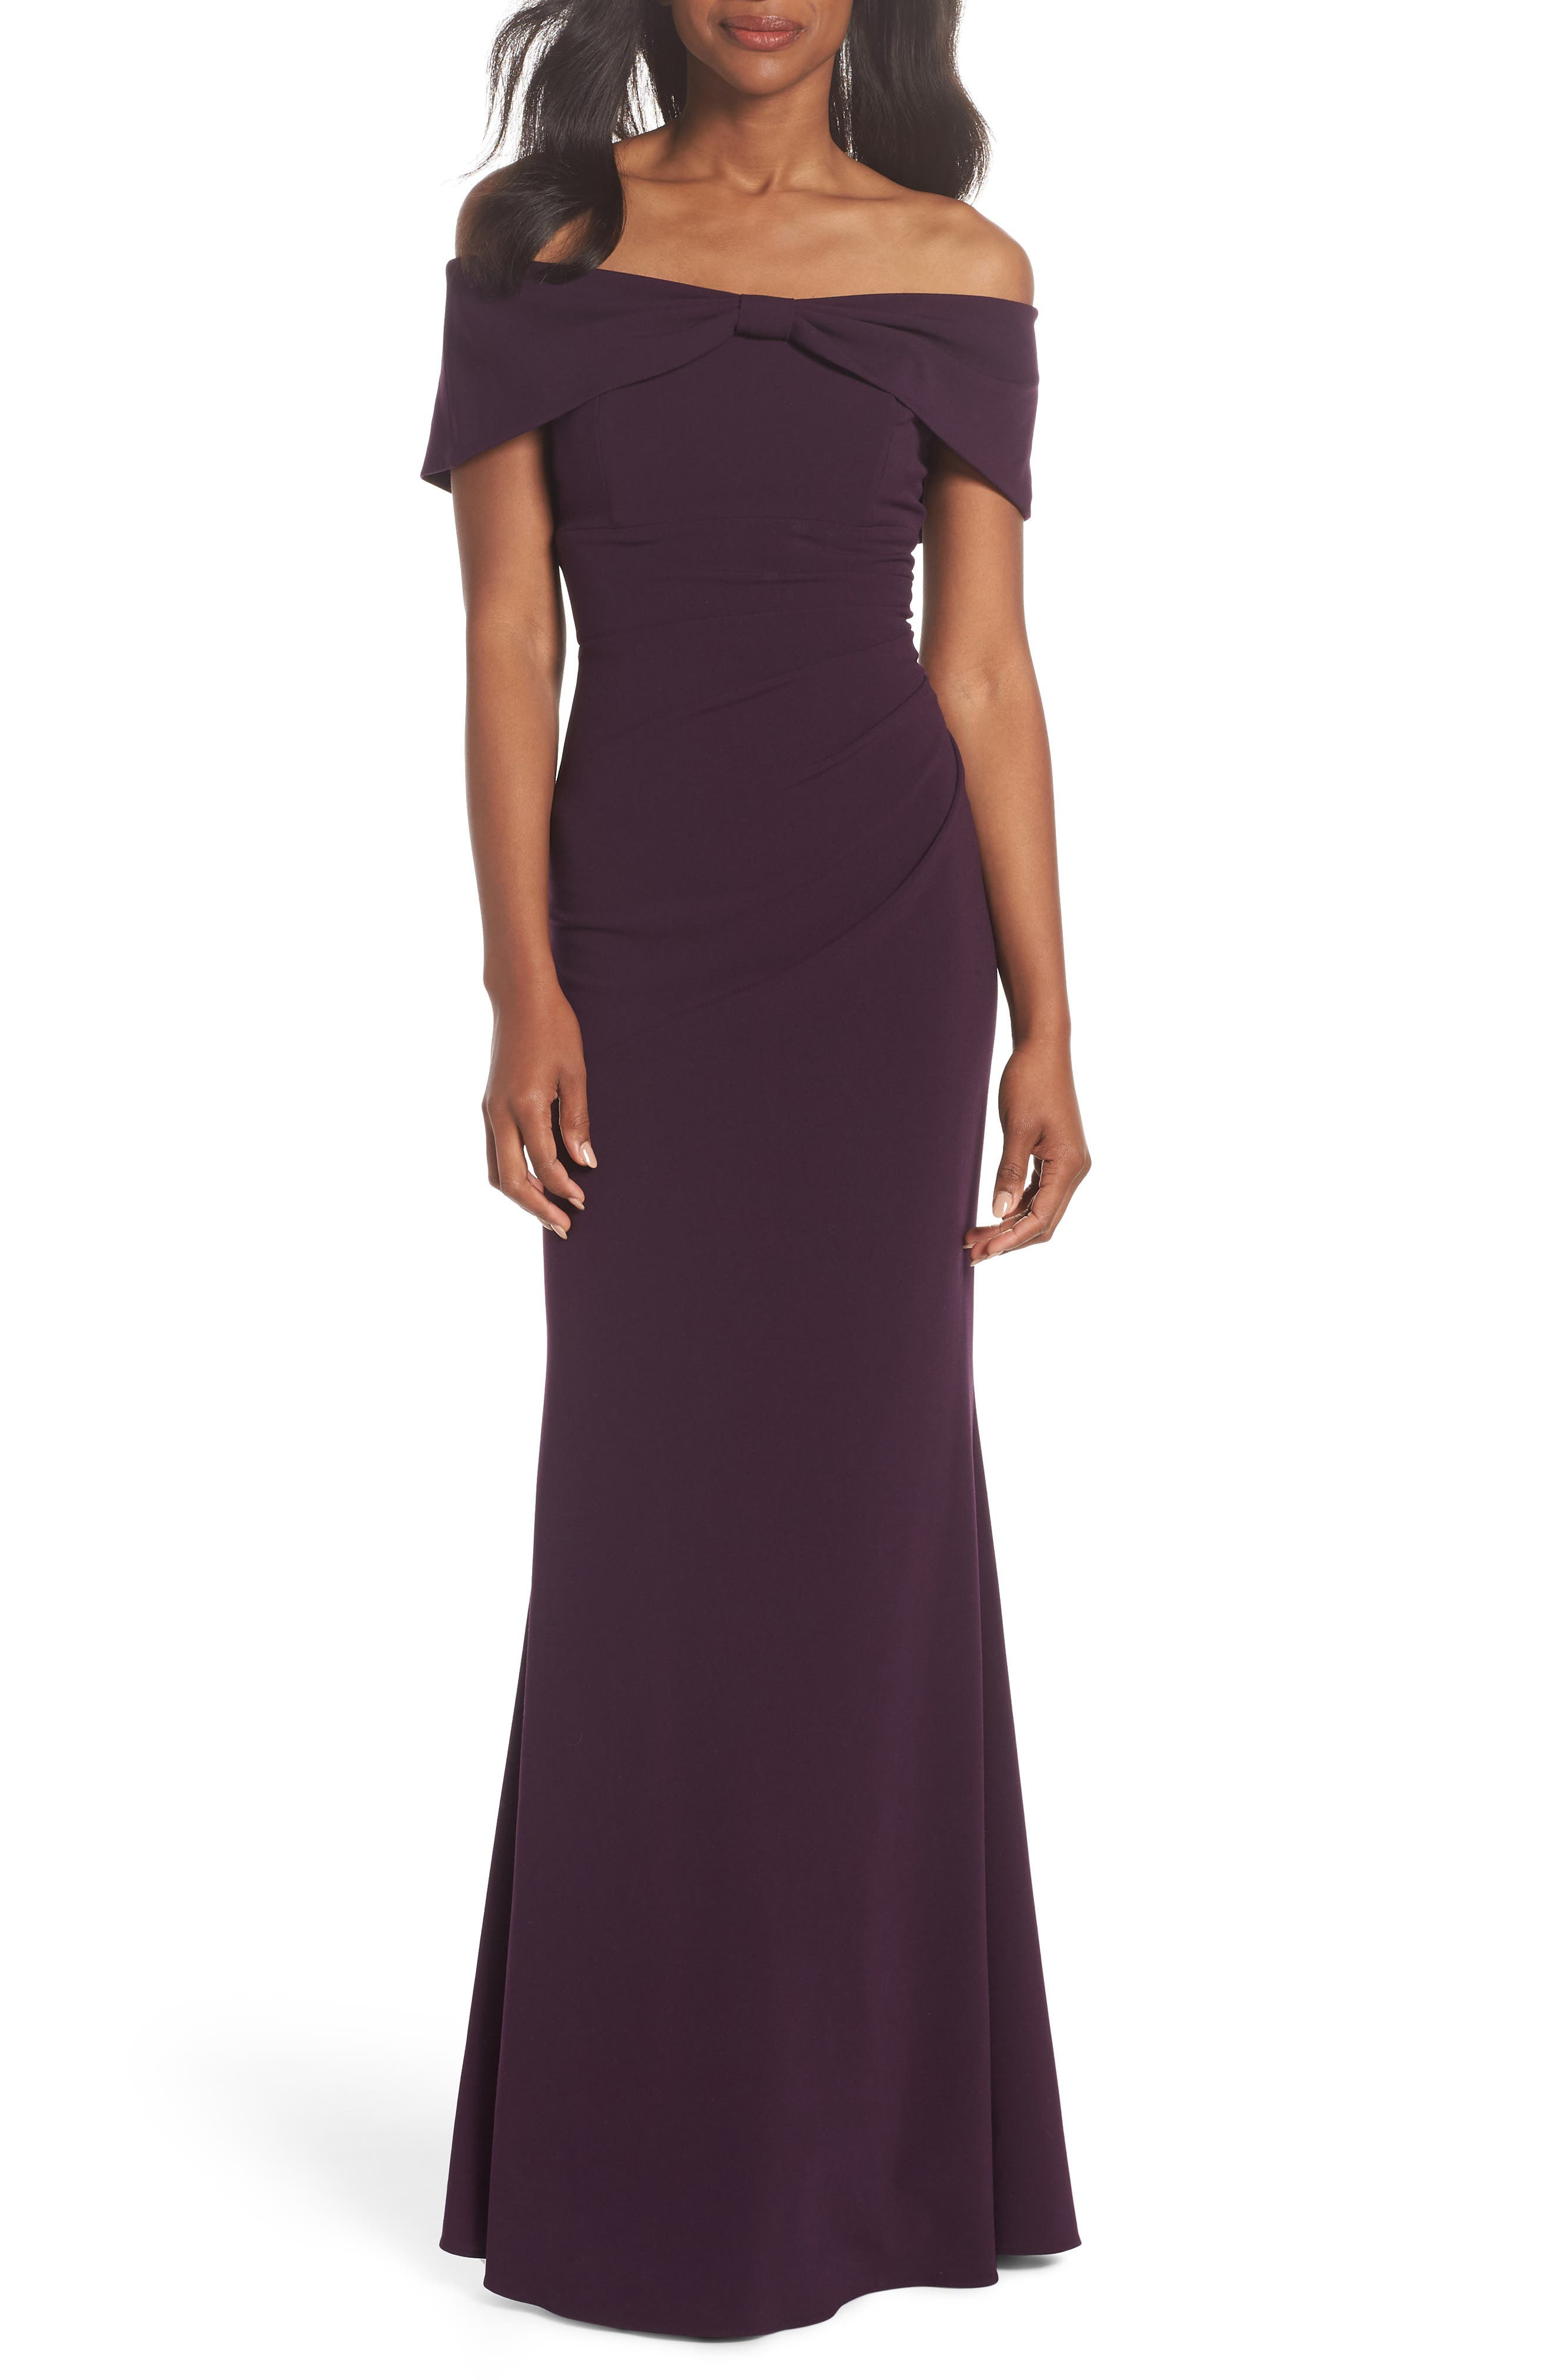 ELIZA J Knot Front Off the Shoulder Gown, Main, color, 506